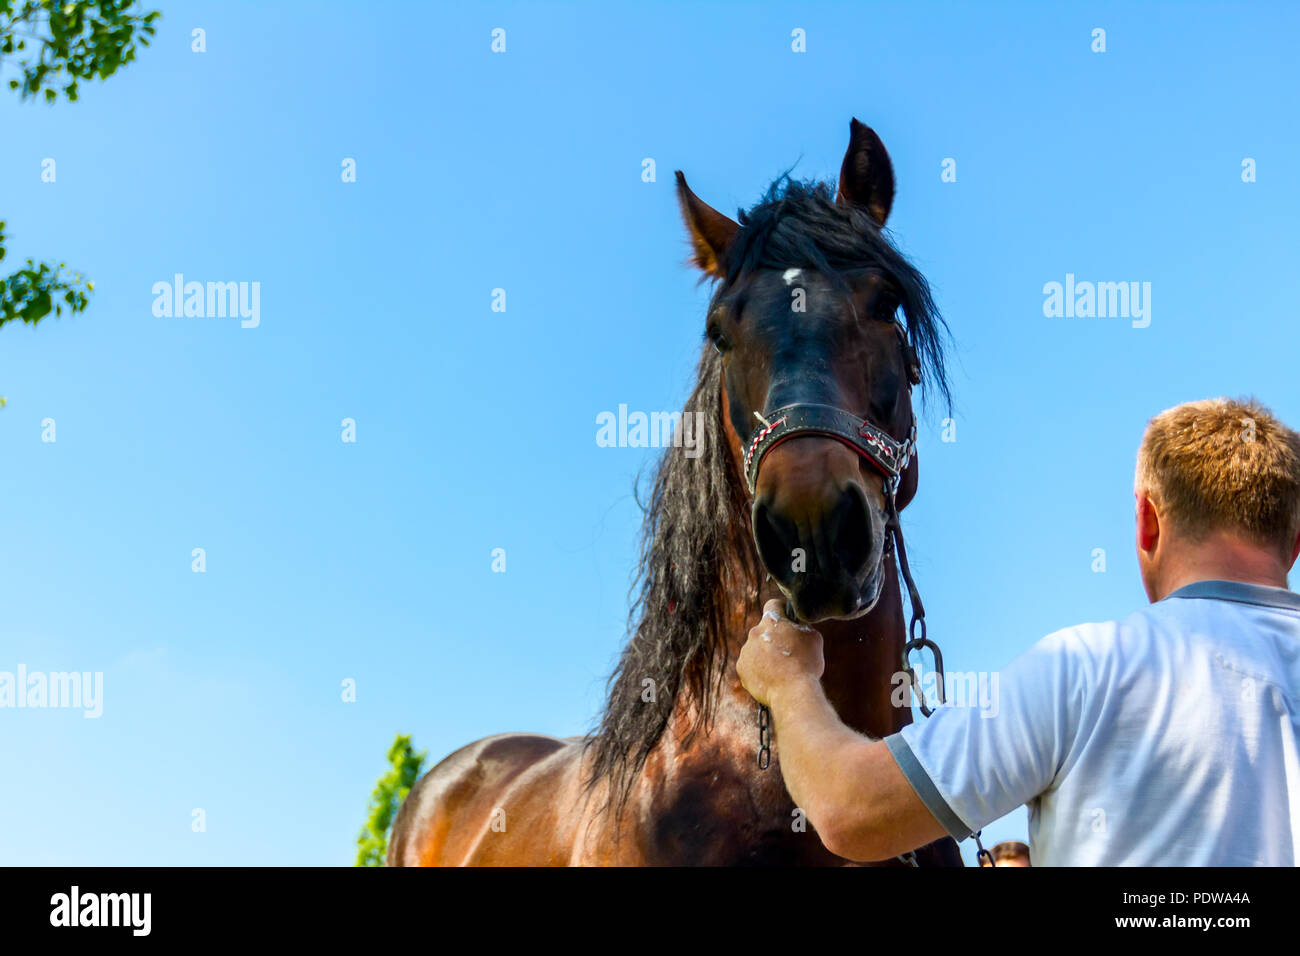 Man is holding the reins of a brown thoroughbred horse race, hold saddle strap. - Stock Image